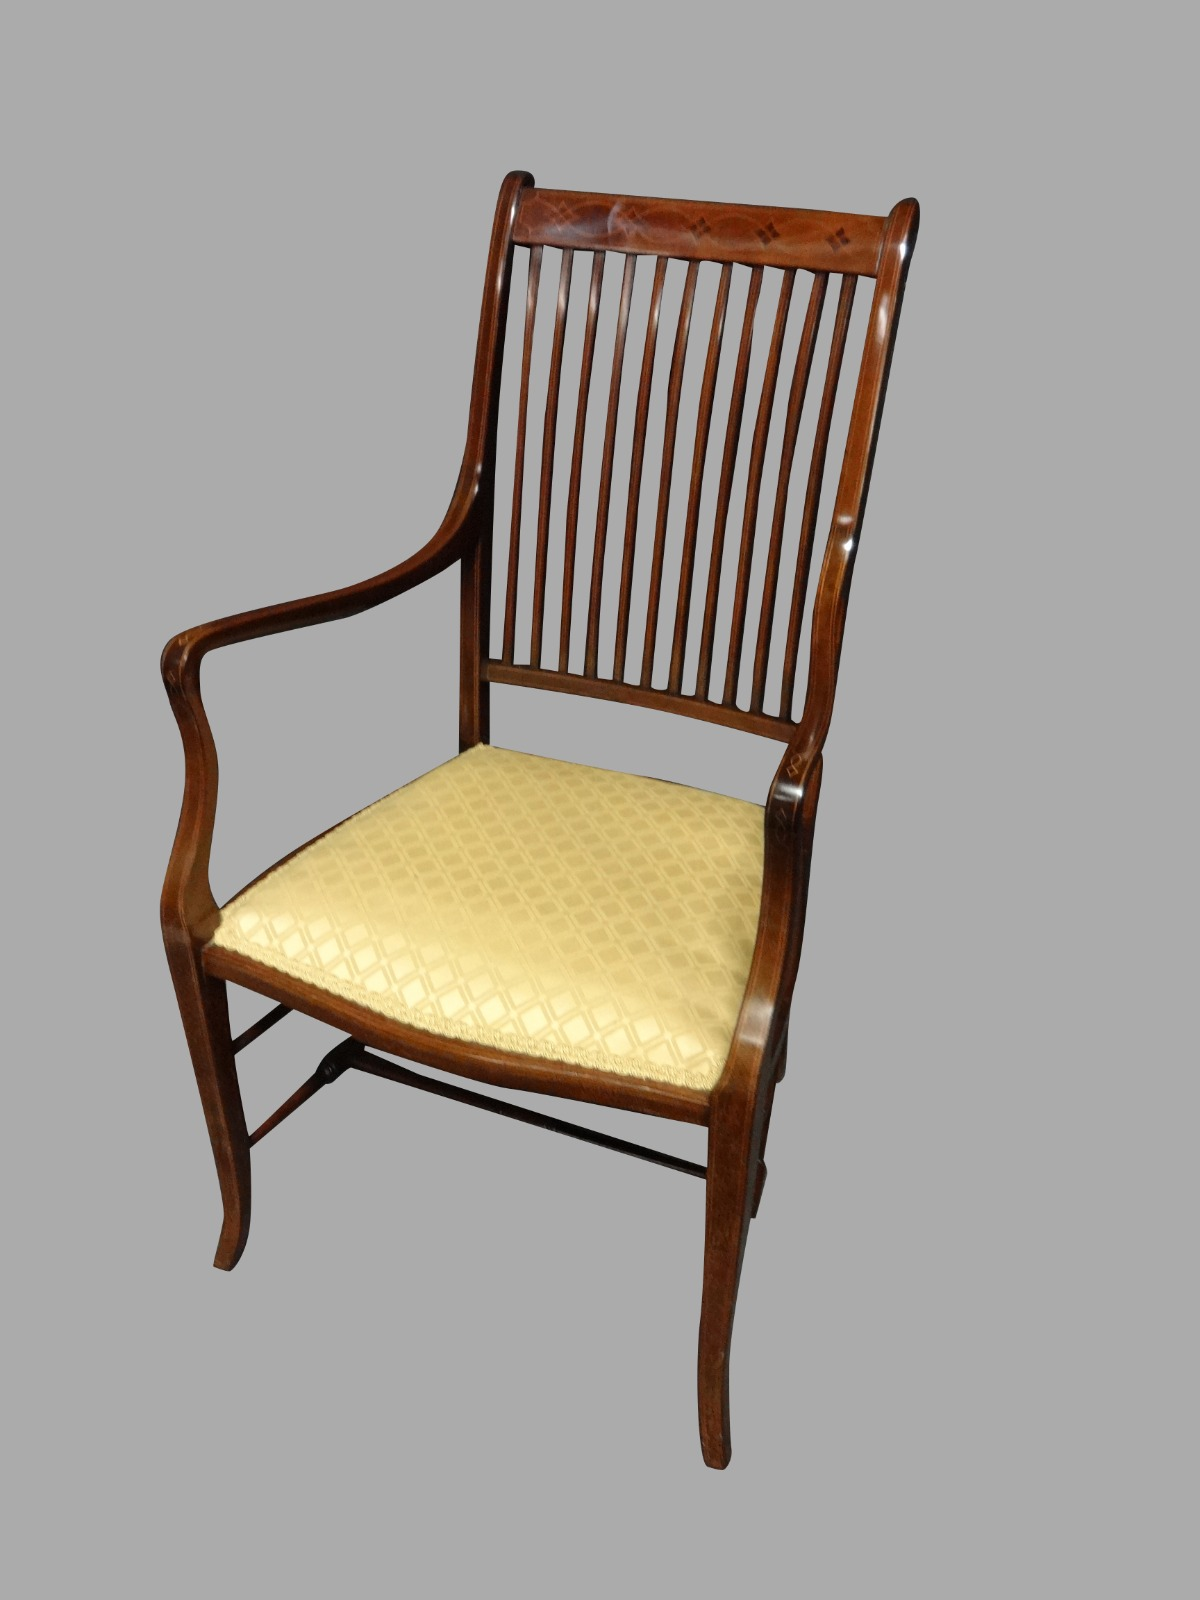 Very Good Edwardian Inlaid Elbow Chair (1 of 1)